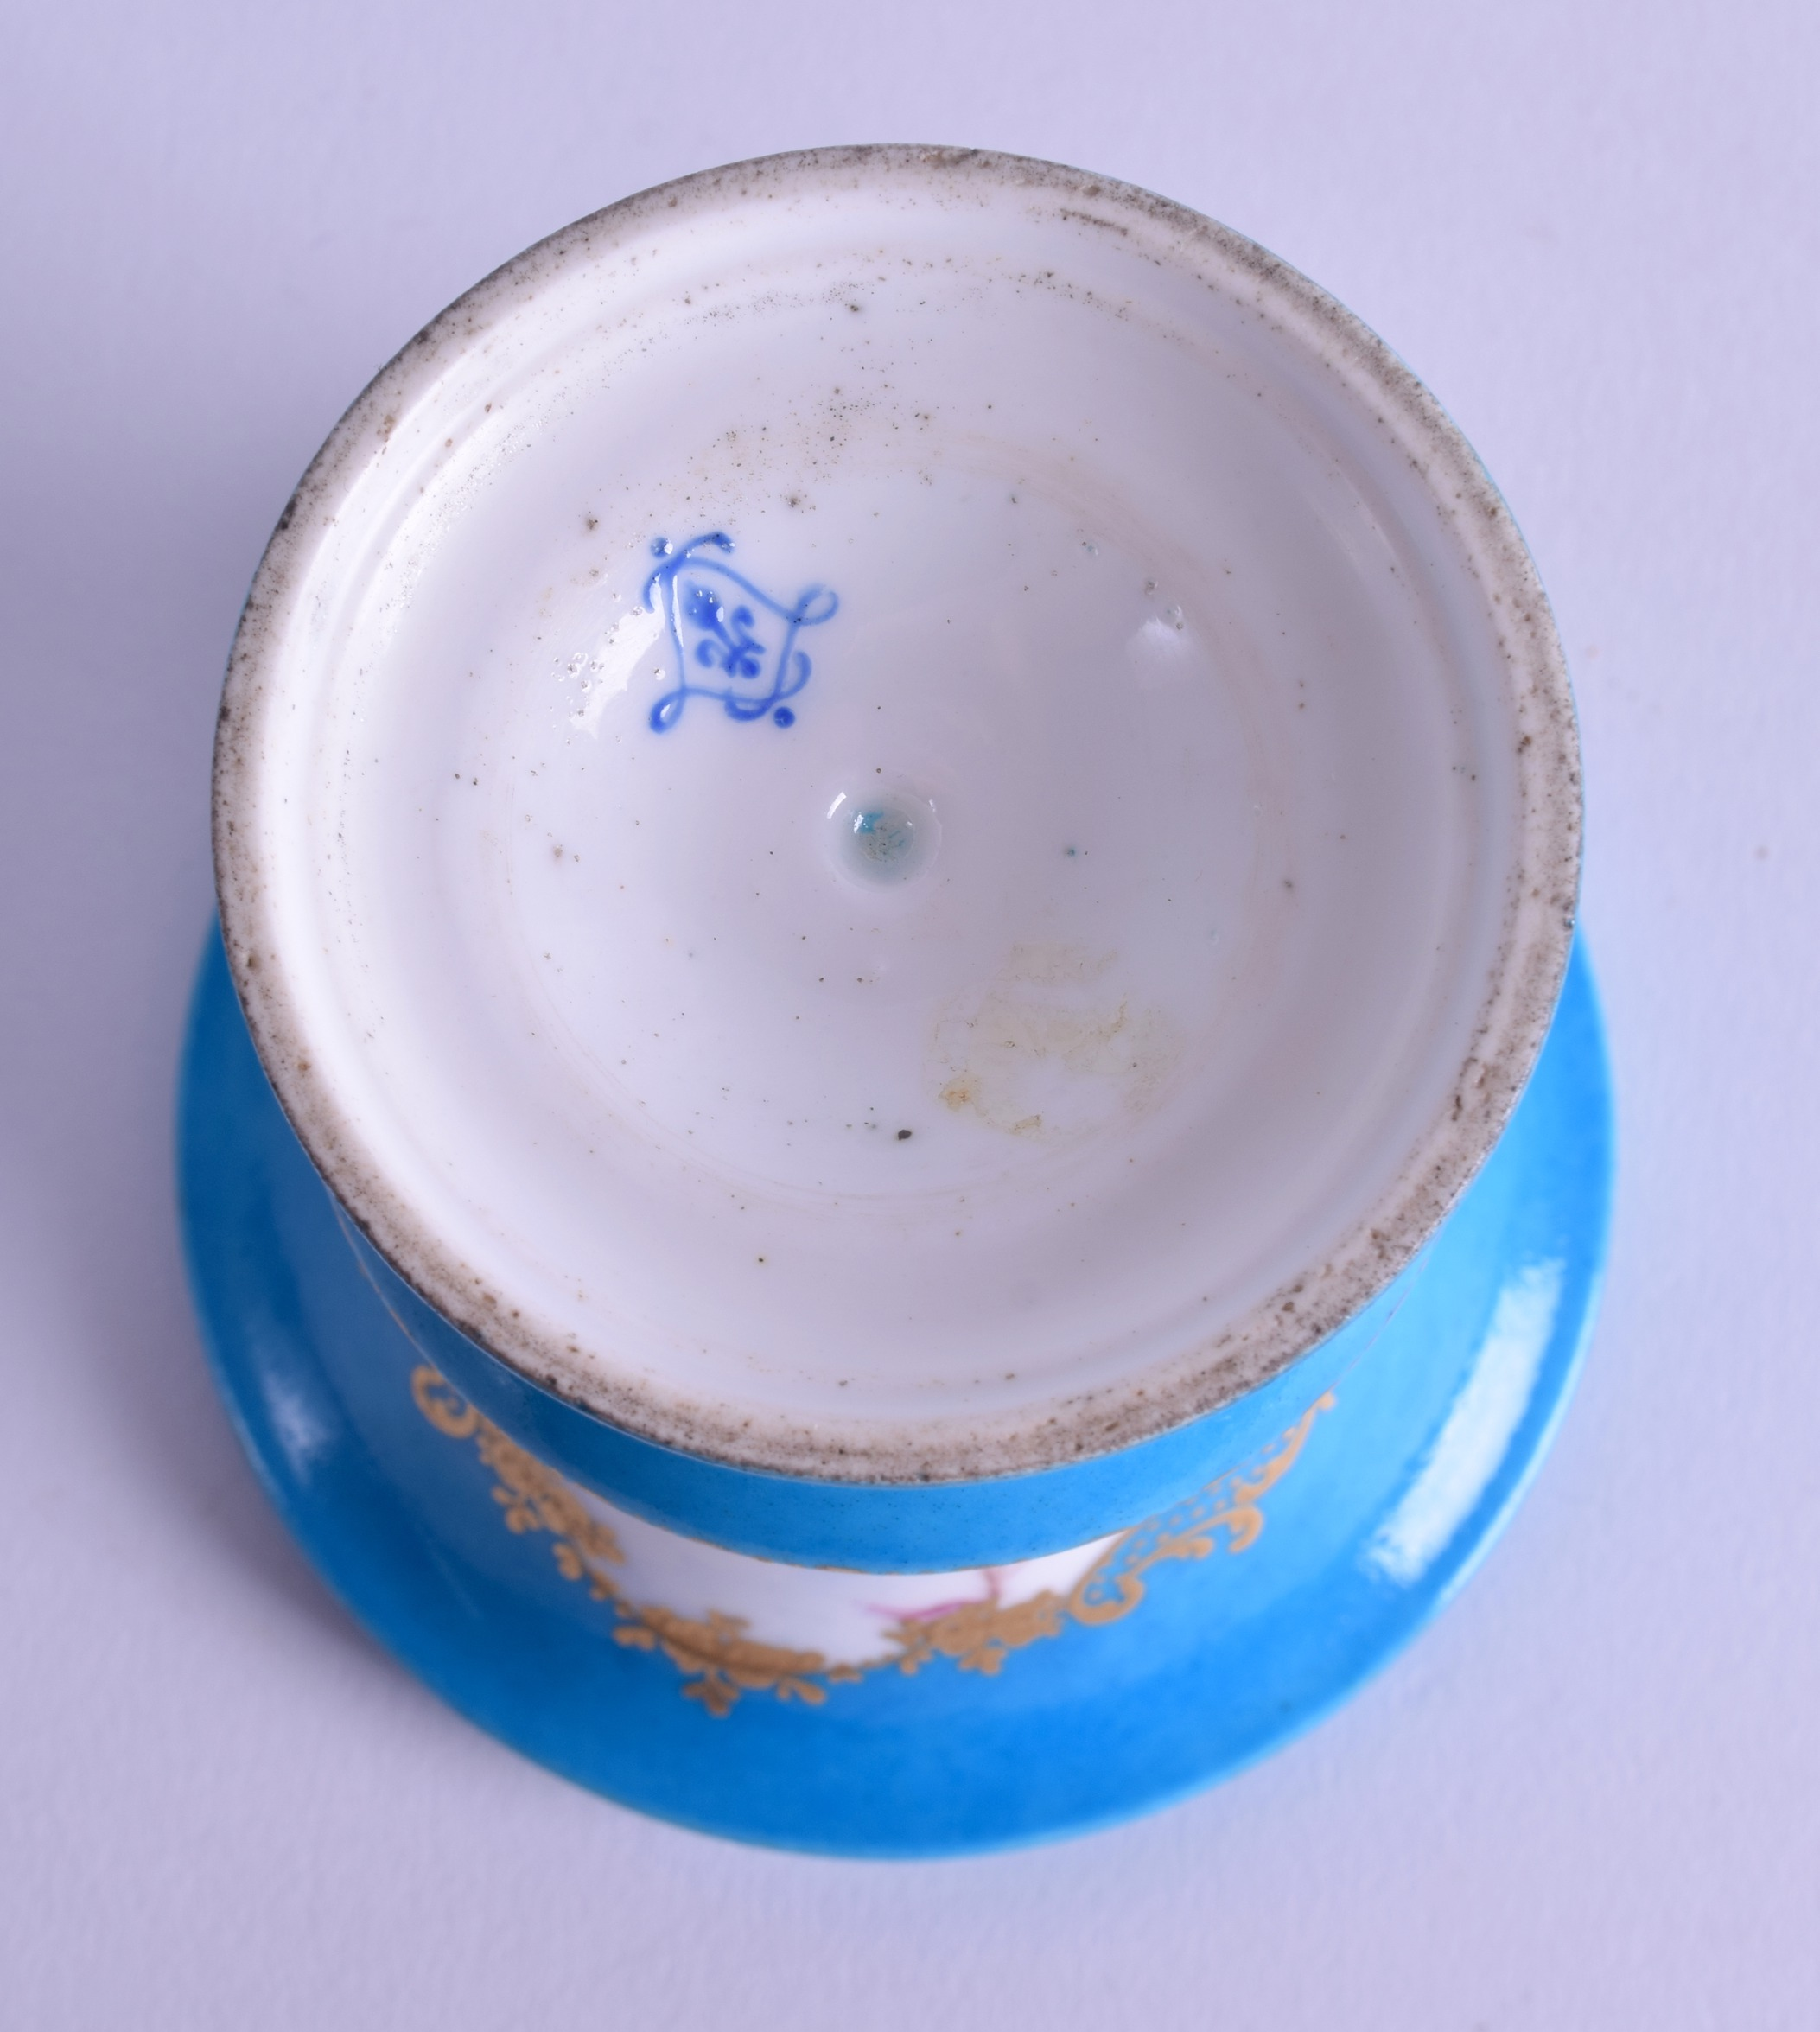 Lot 136 - 19th c. Sevres style vase painted with two harbour scenes on a turquoise ground. 10cm high